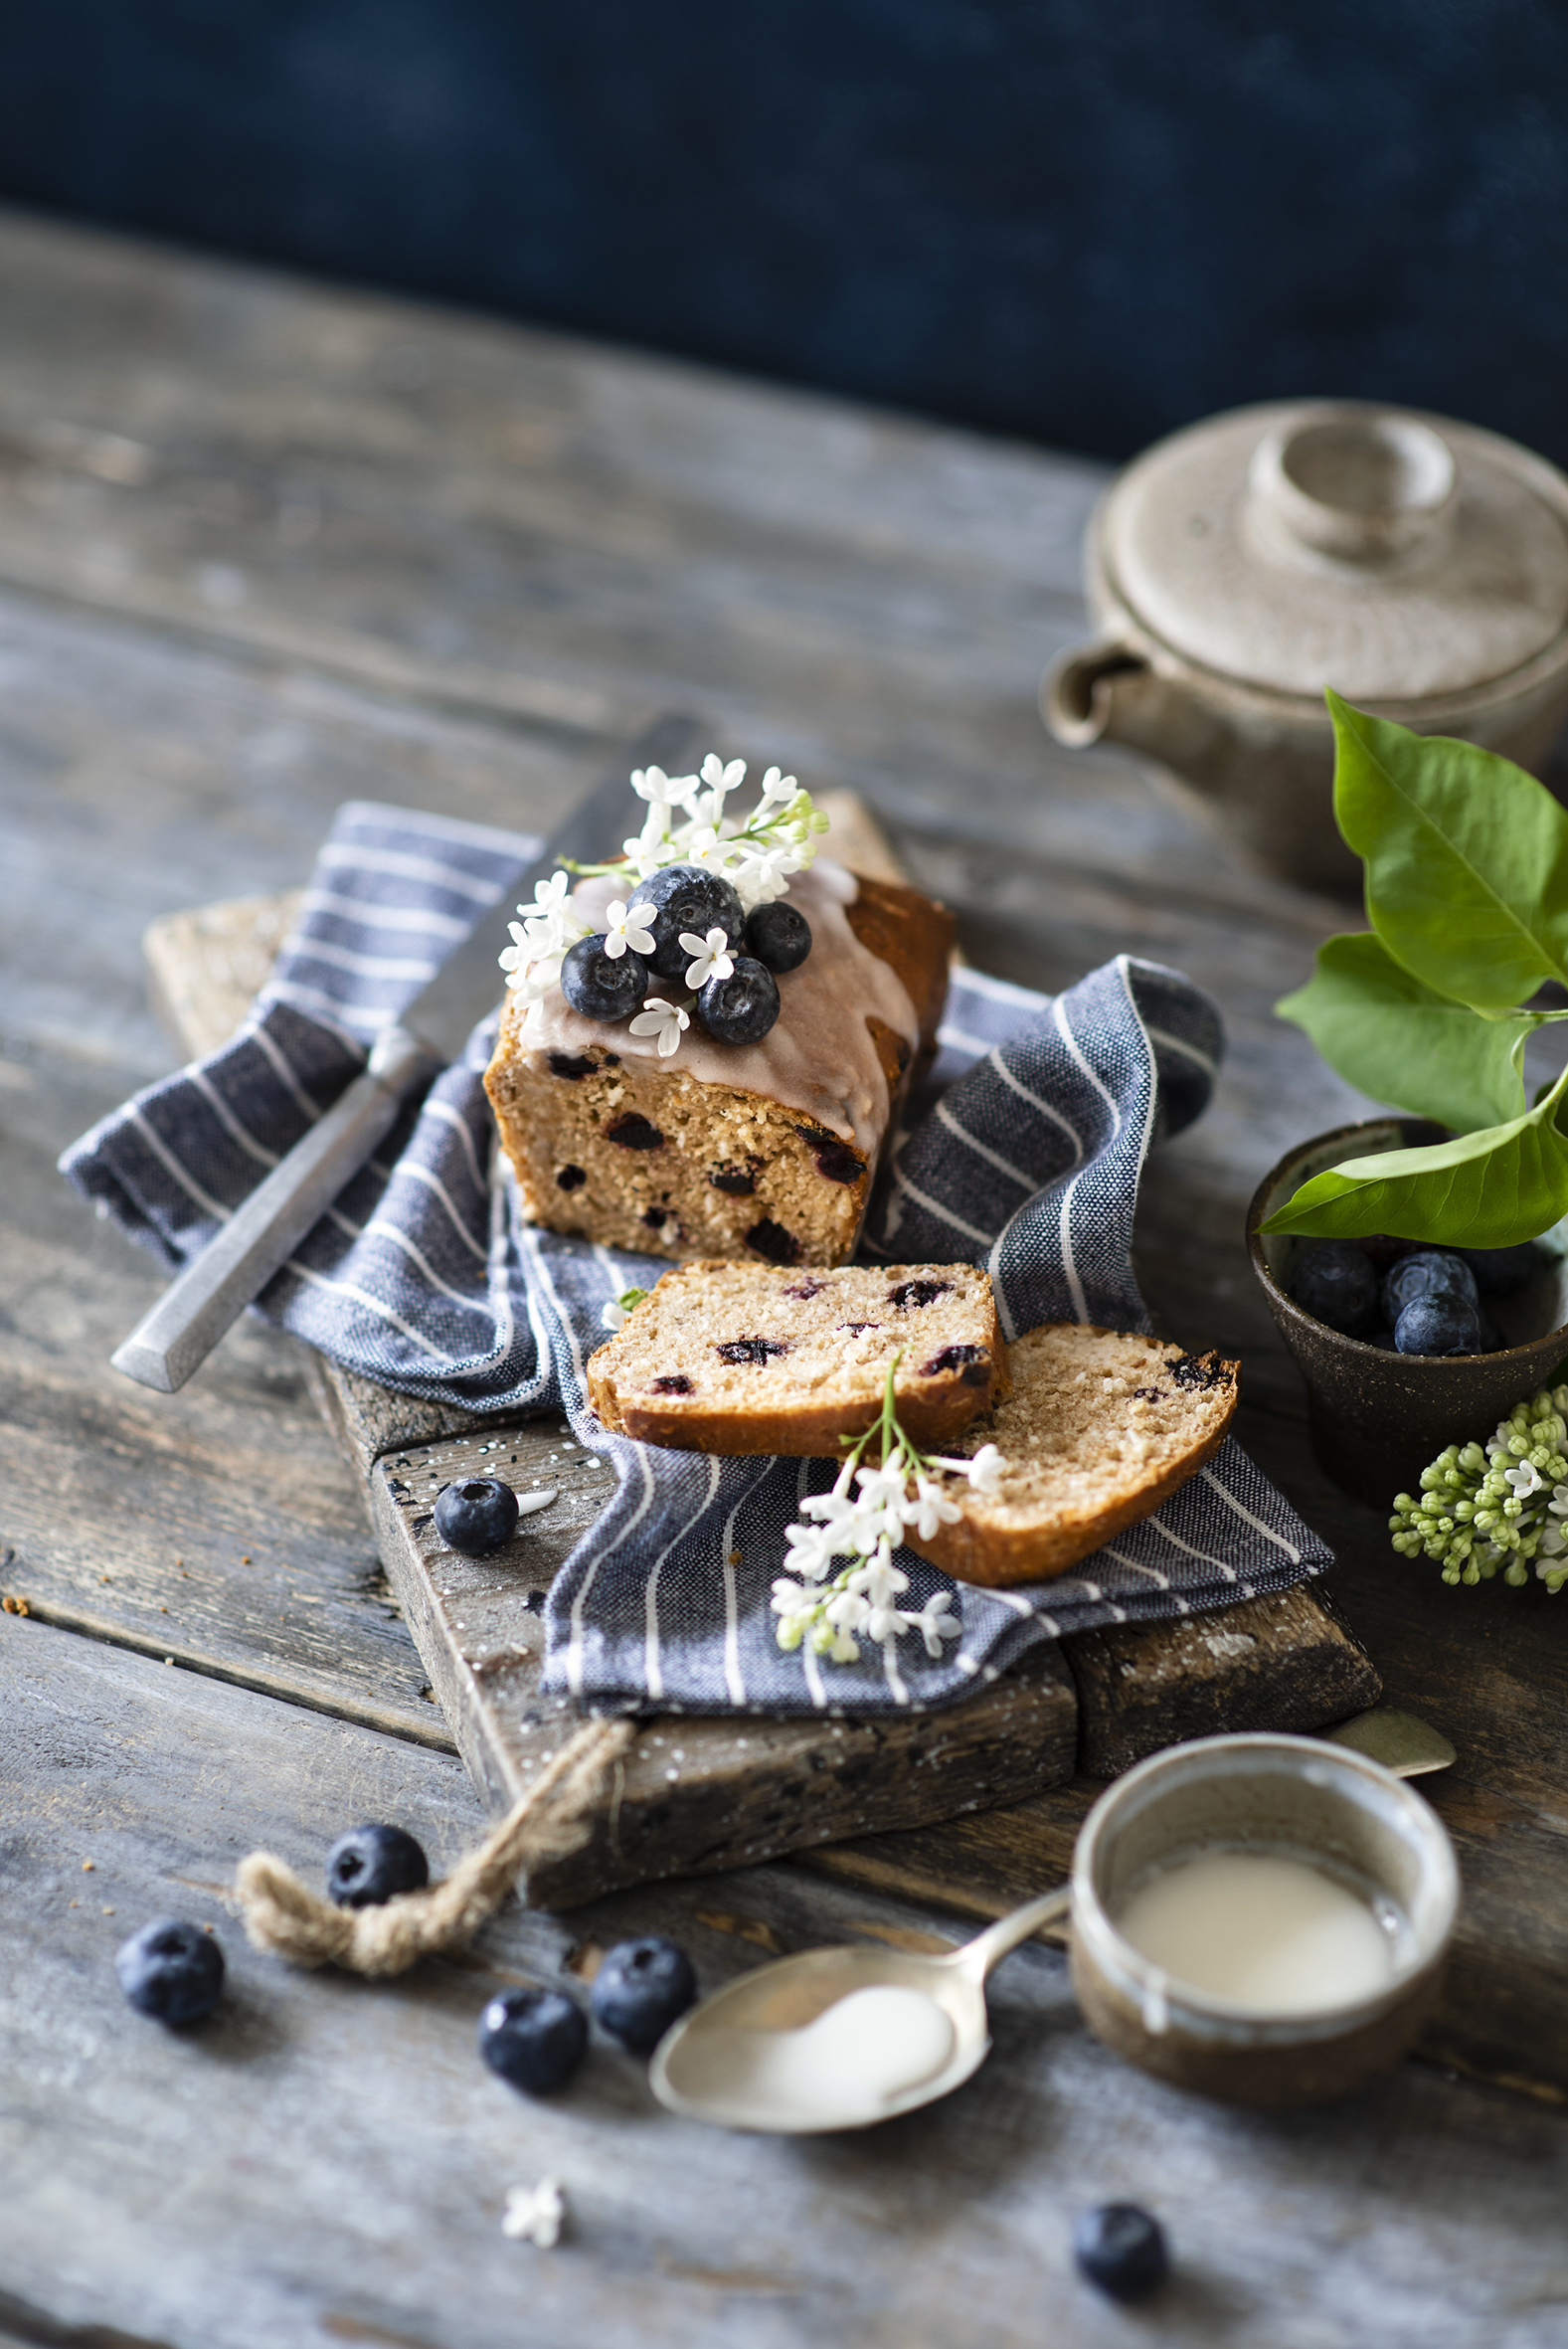 Images Pound Cake Blueberries Food Pastry boards  for Mobile phone baking Wood planks